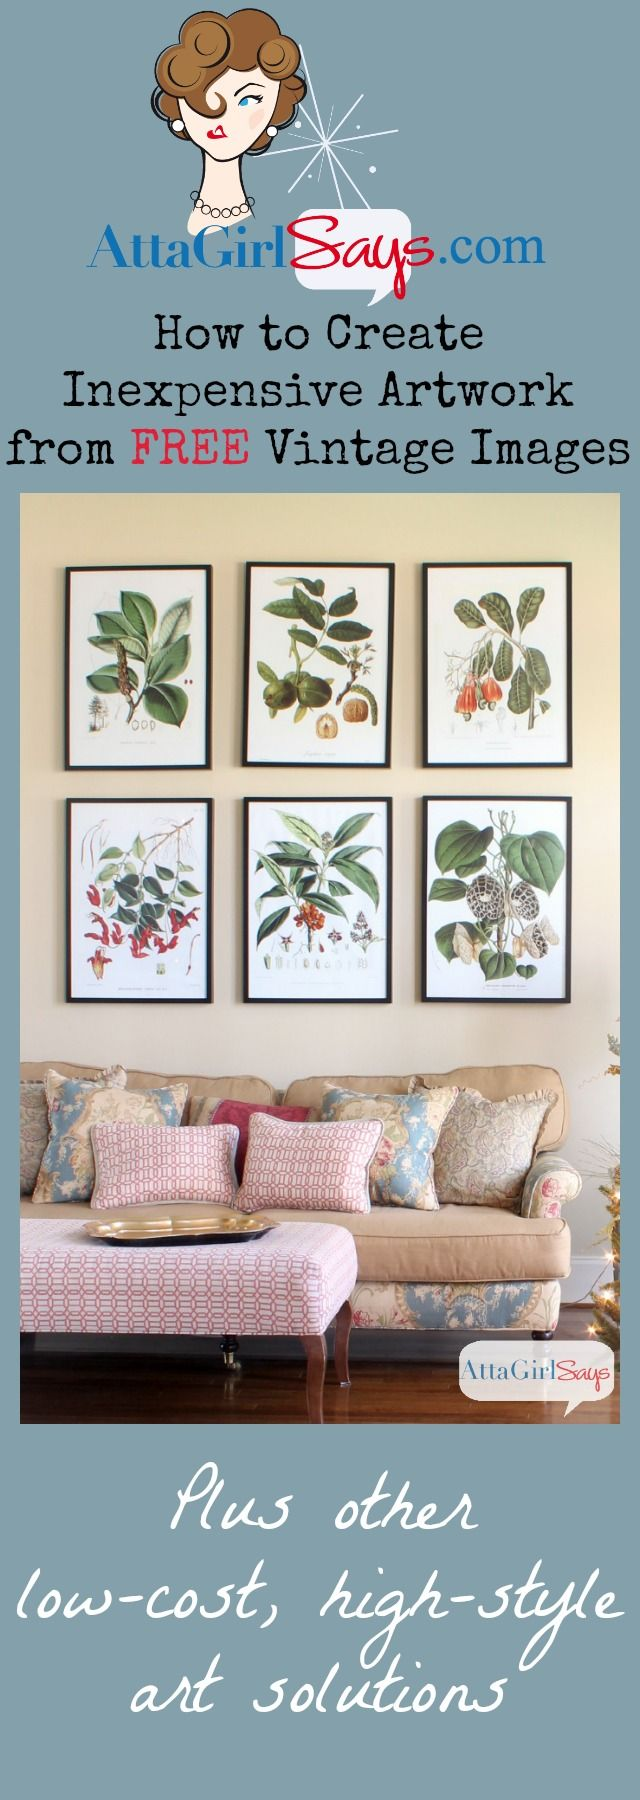 best picture frames images on pinterest